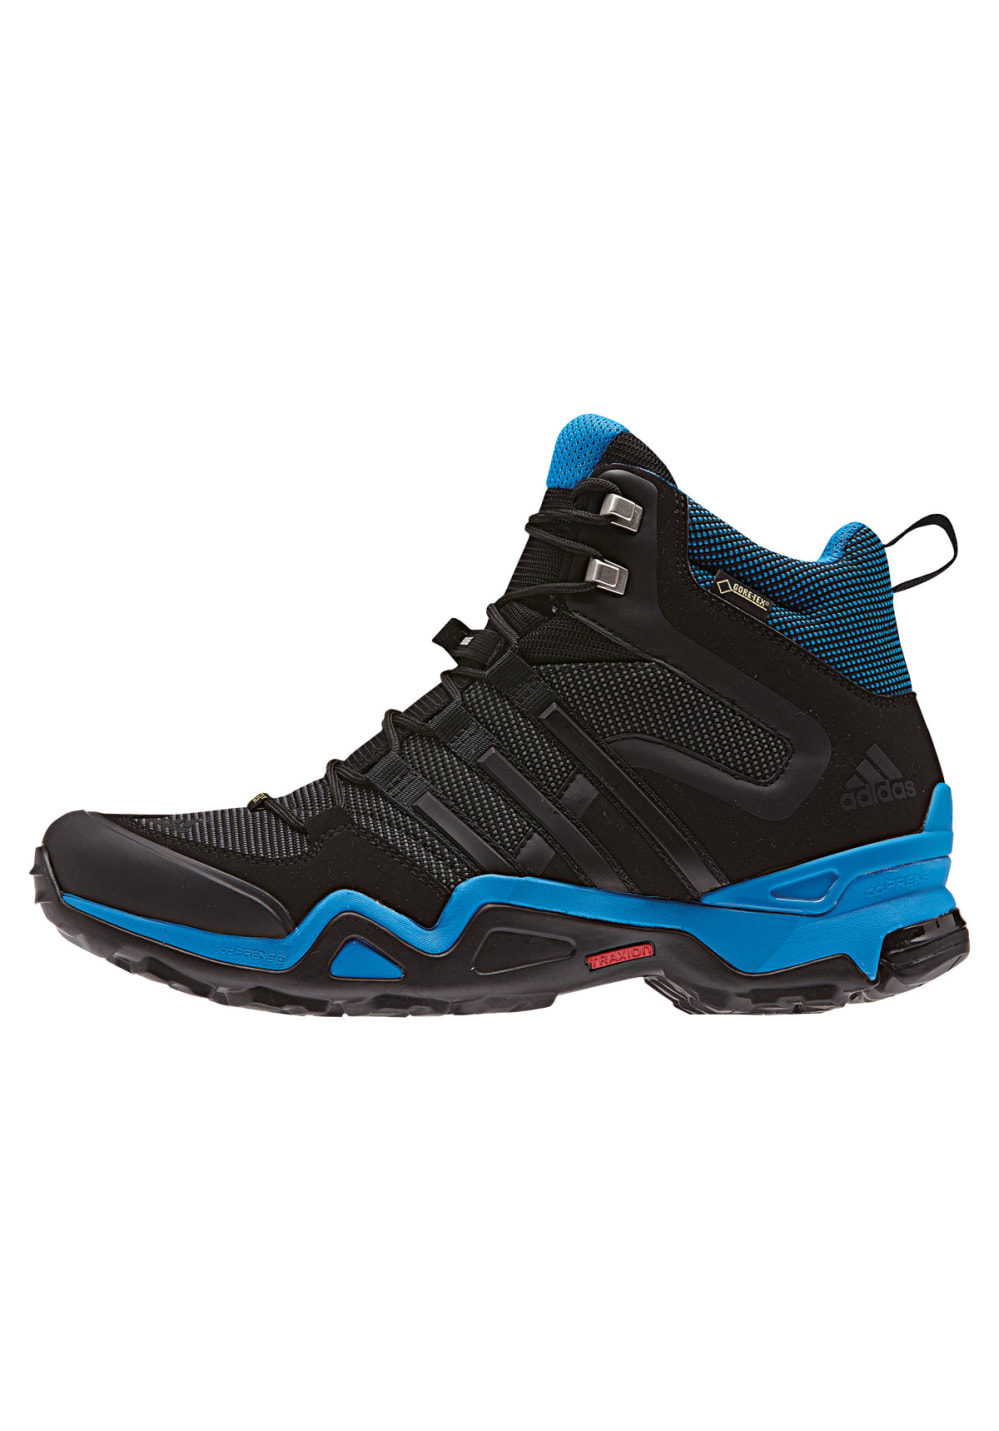 adidas Fast X High GORE-TEX® Outdoorschuh qfN38l3j